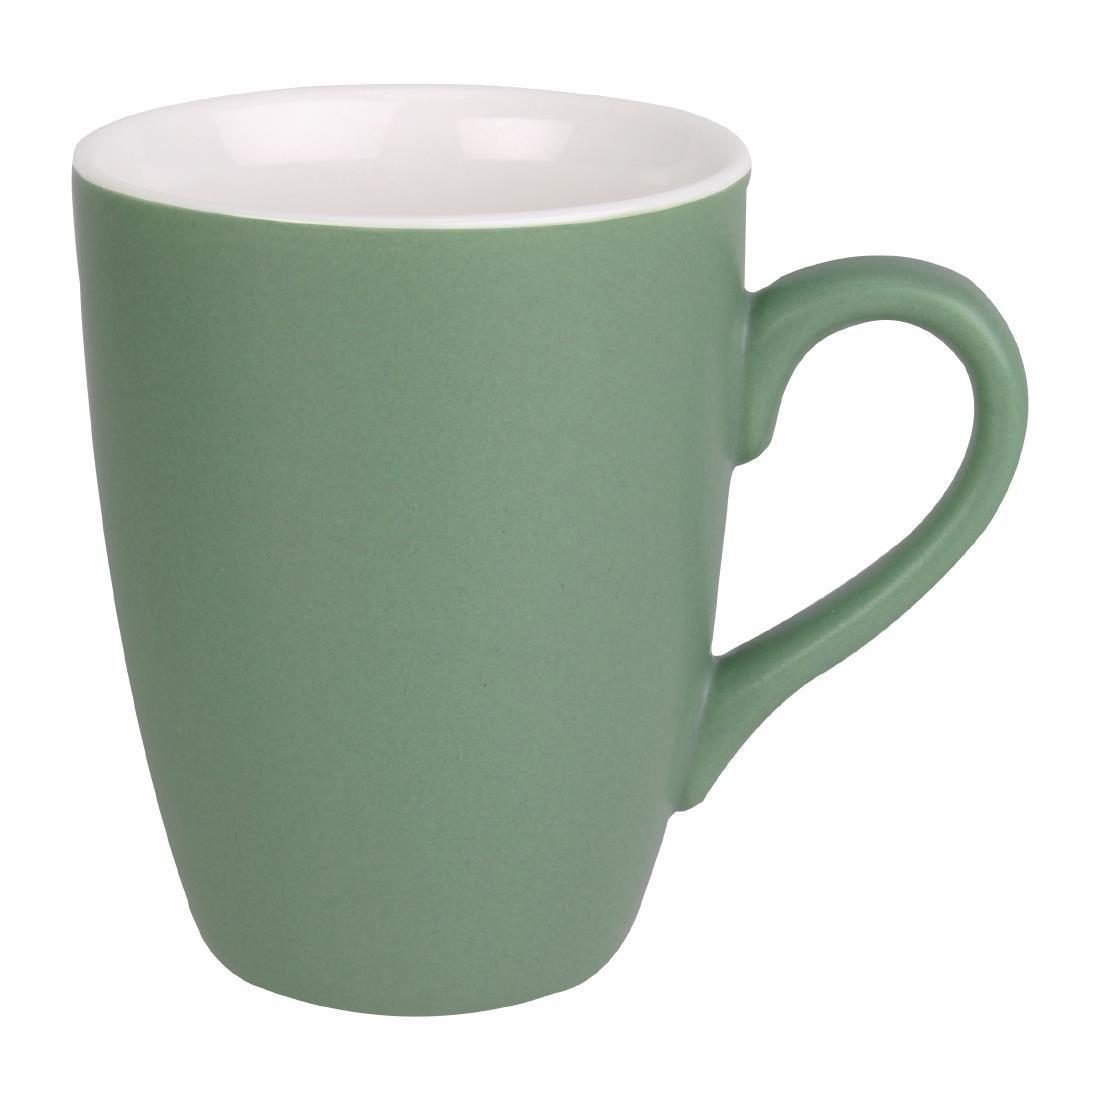 Olympia Matt Pastel Mug Green 340ml